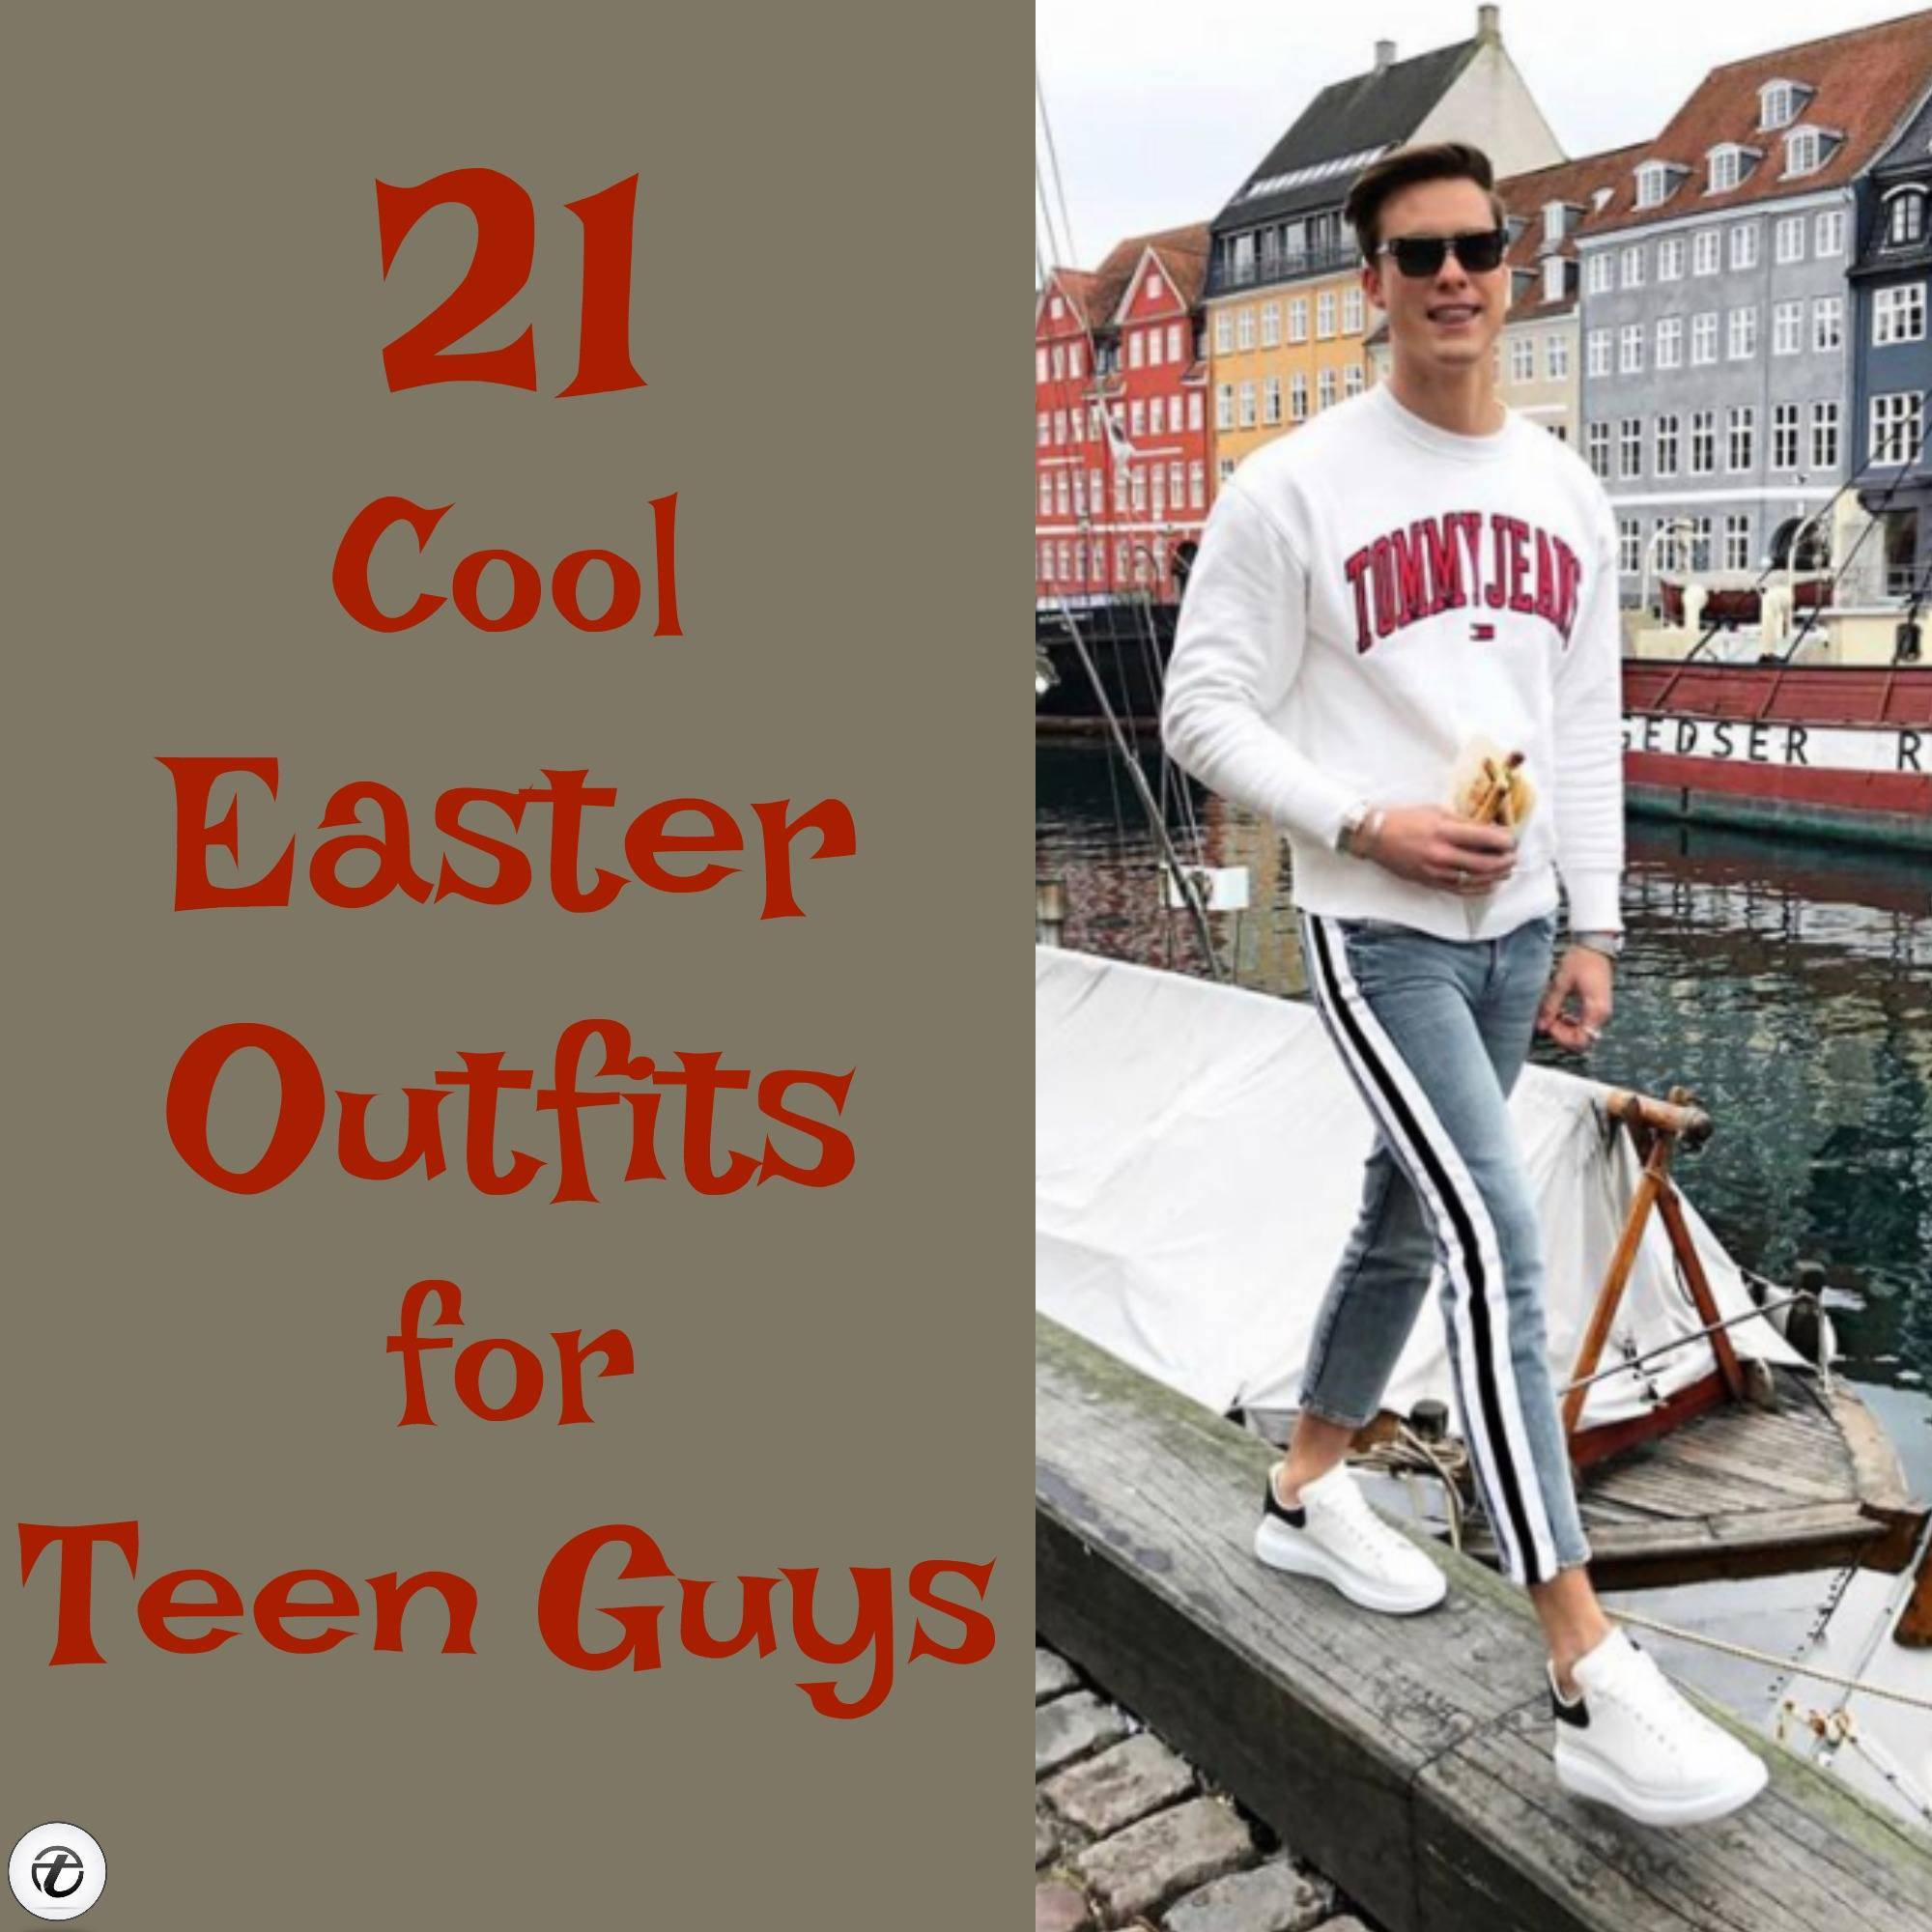 21 Cool Easter Outfits for Teen Guys To Wear In 2021